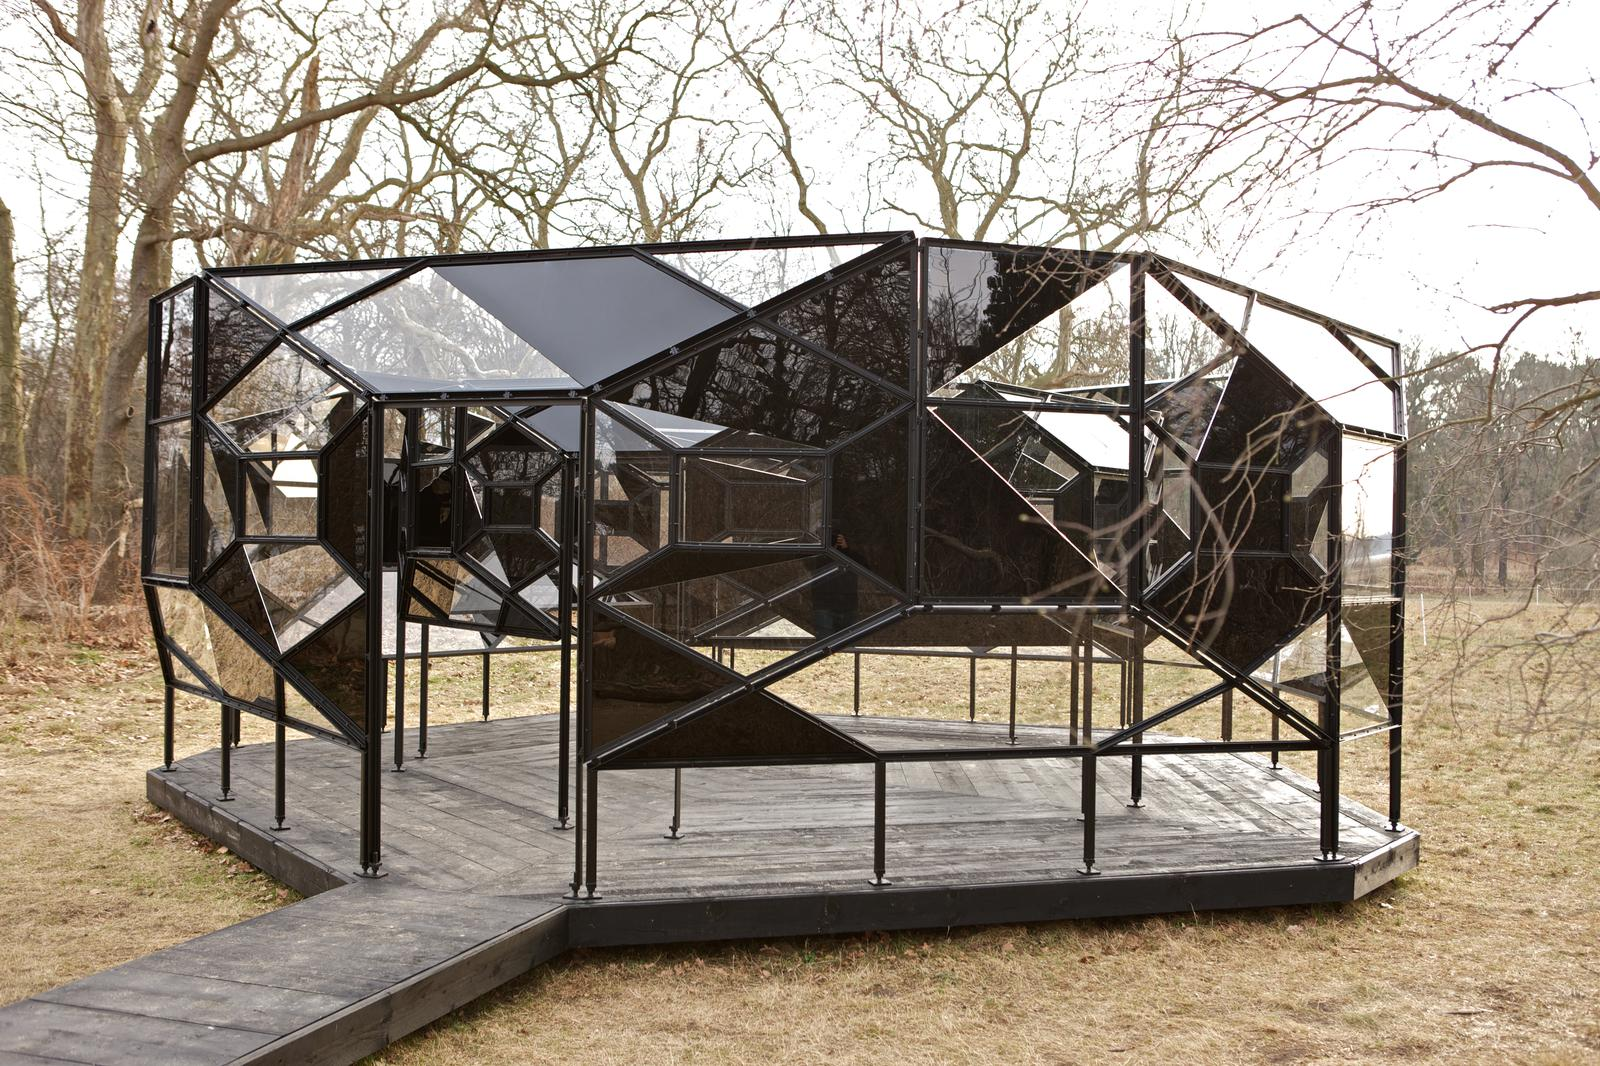 The Blind Pavilion Artwork Studio Olafur Eliasson